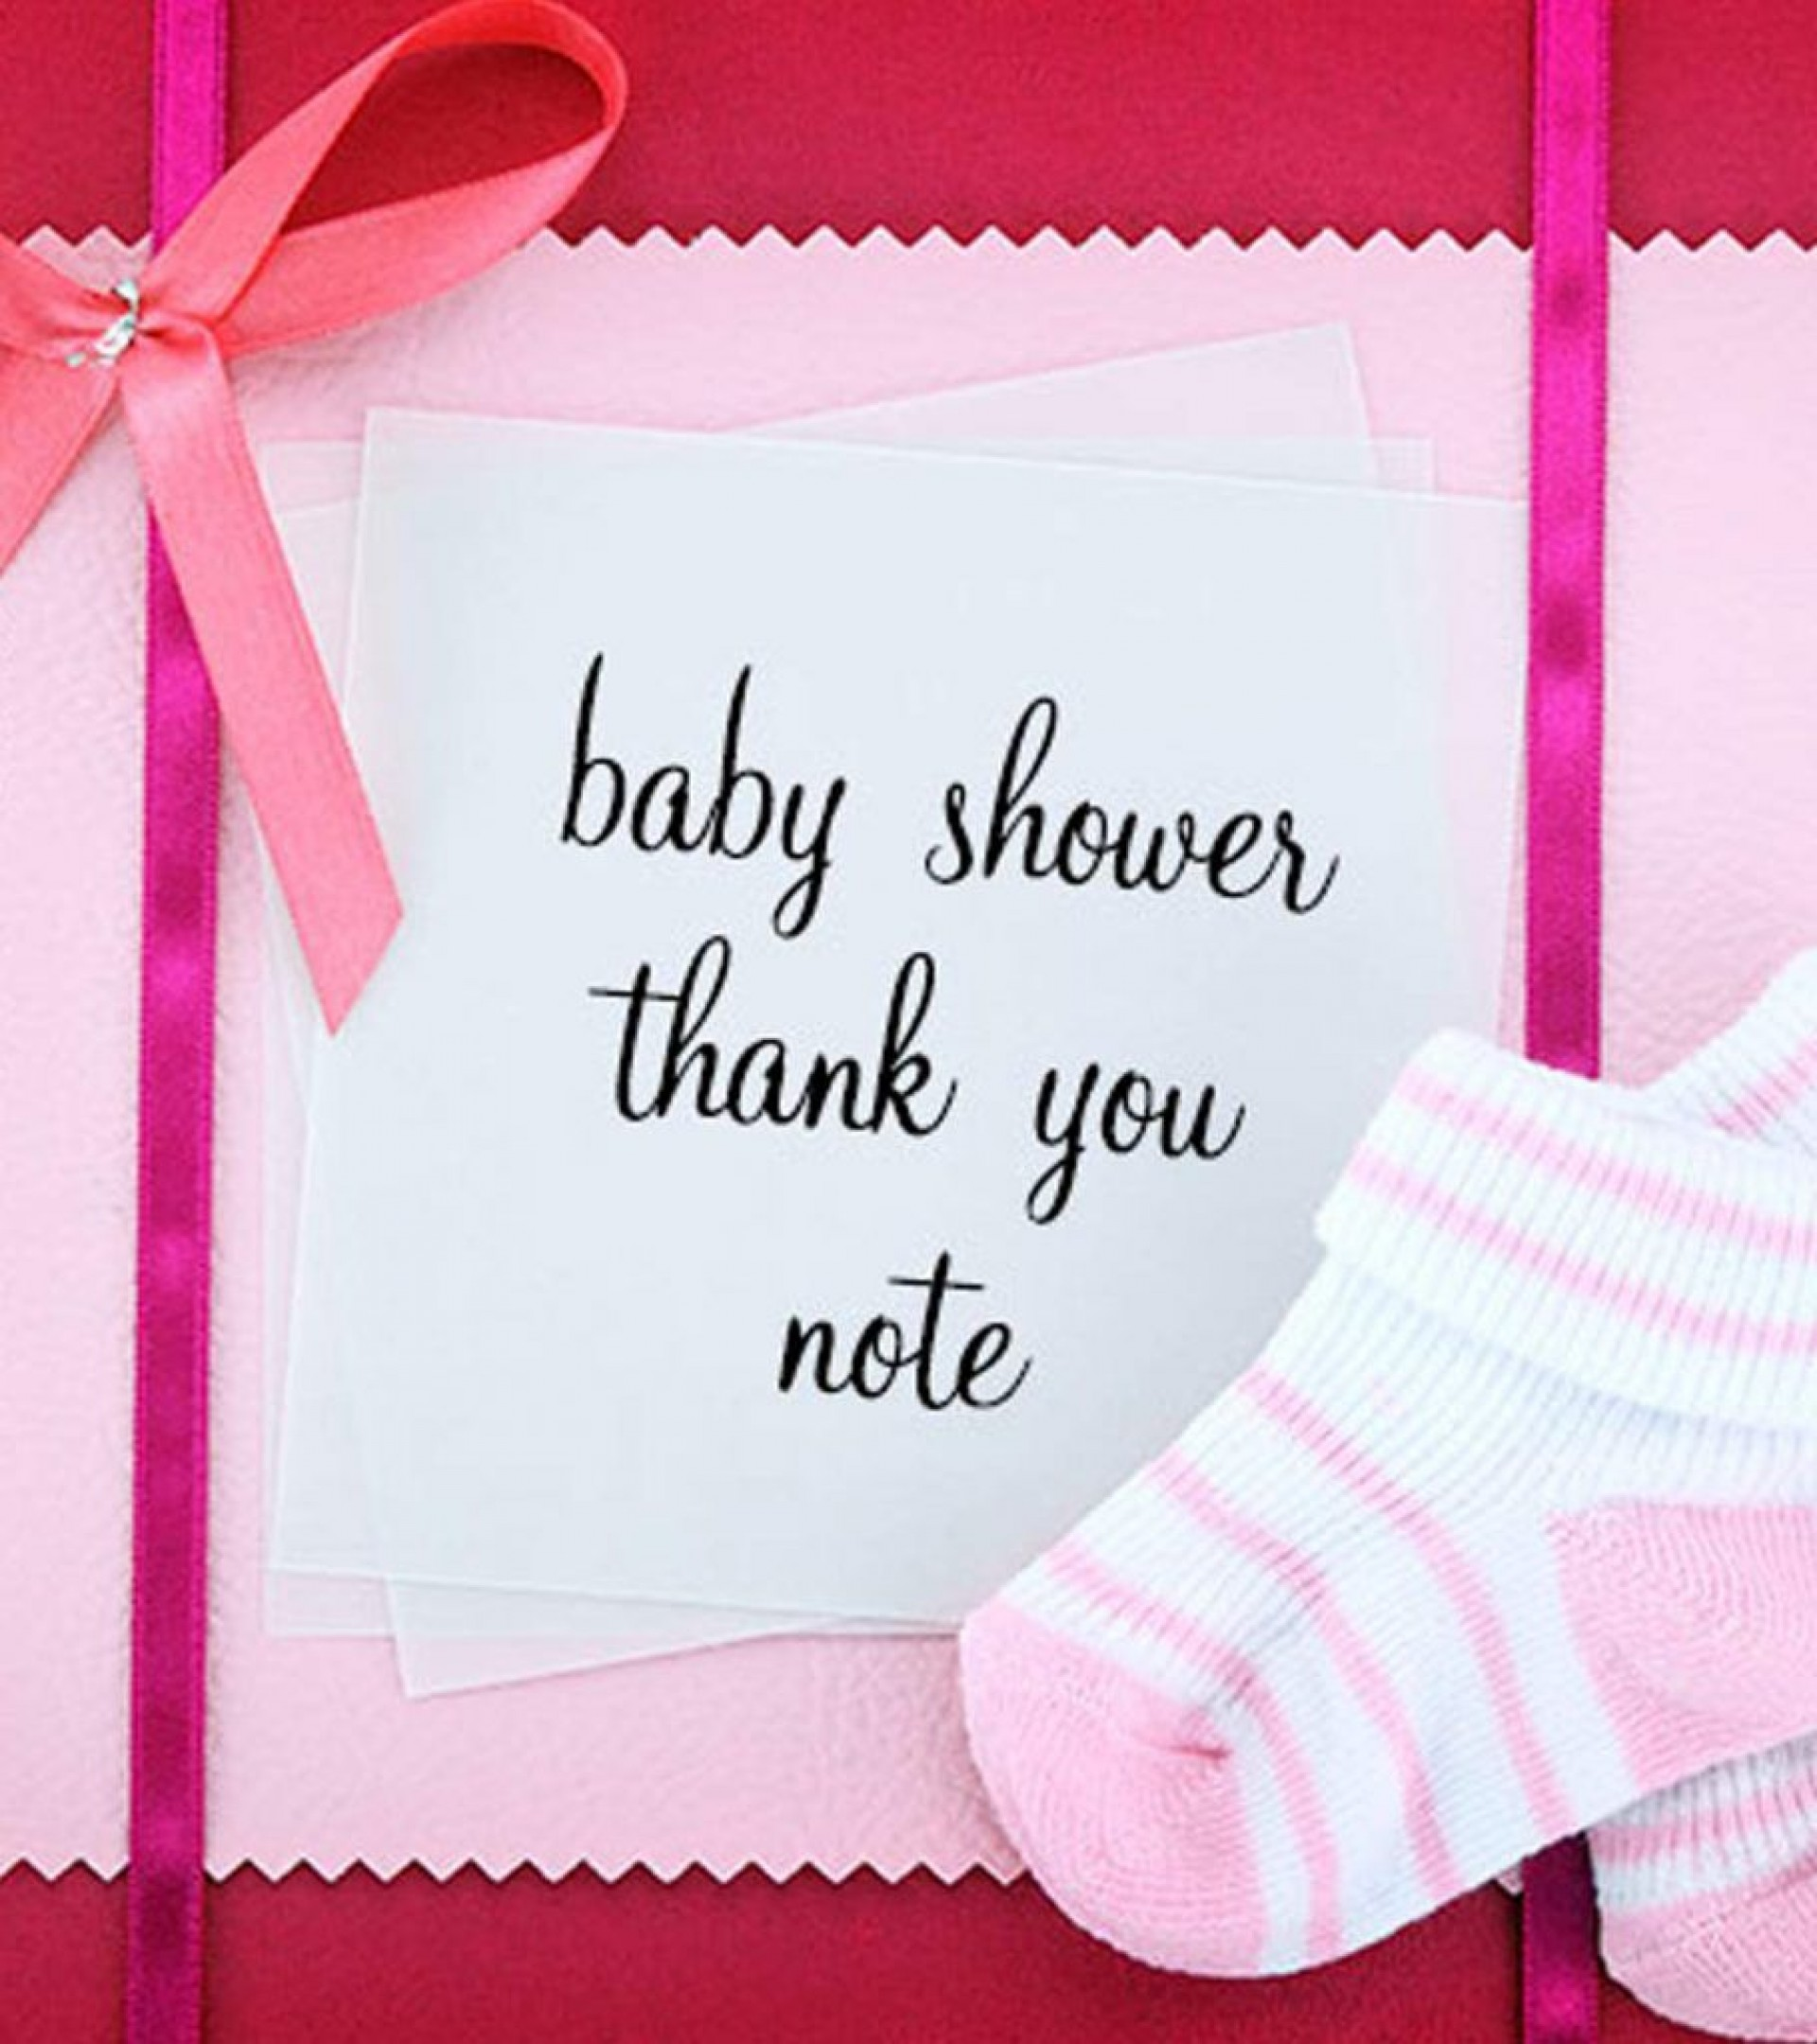 005 Stirring Thank You Note Template For Baby Shower Gift High Resolution  Card Letter Sample1920